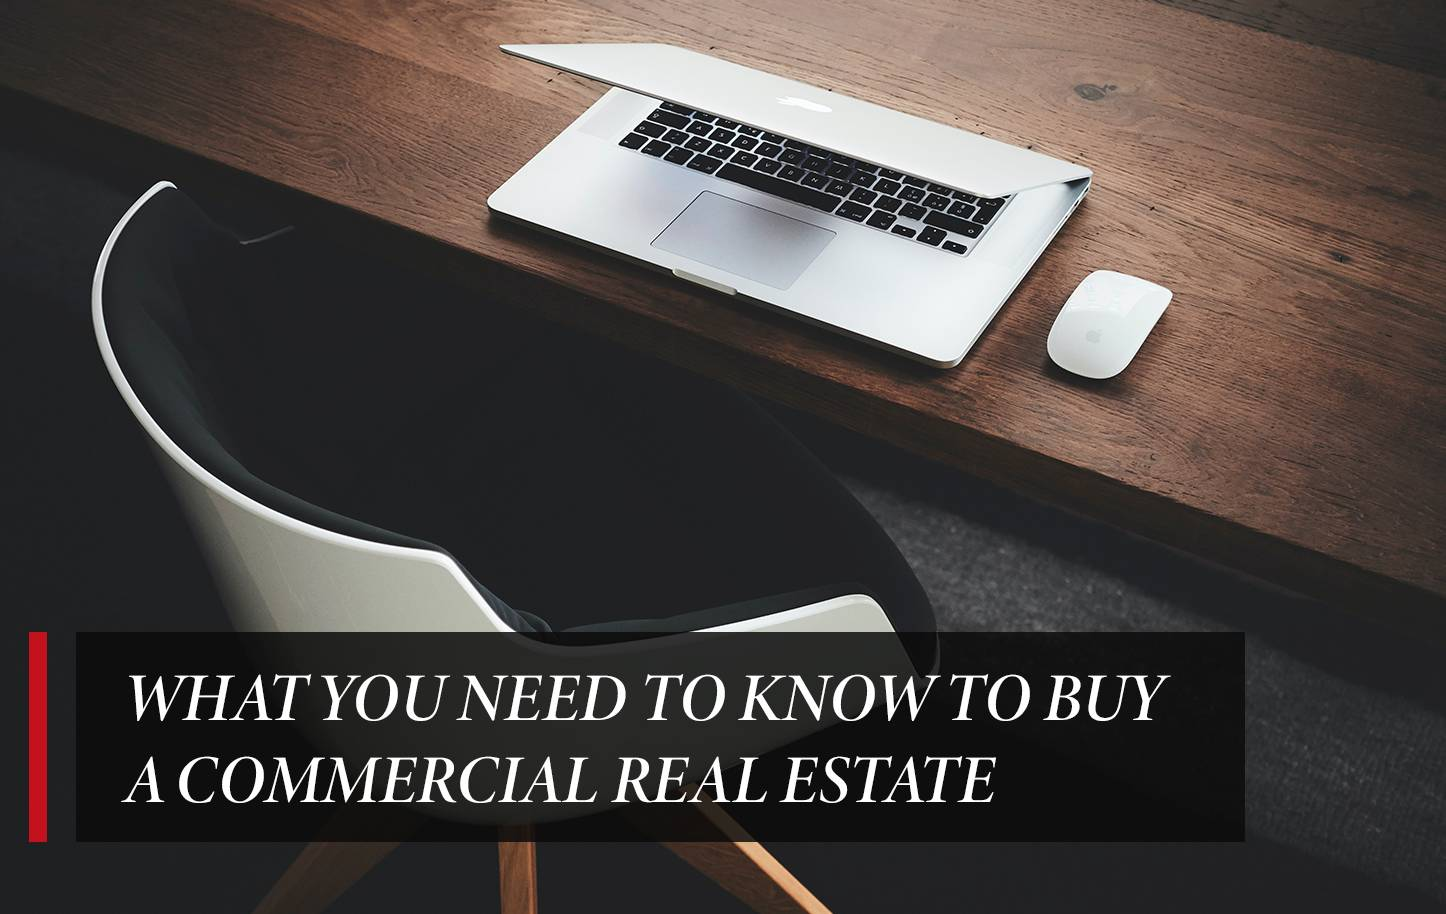 What you need to know to buy a commercial real estate